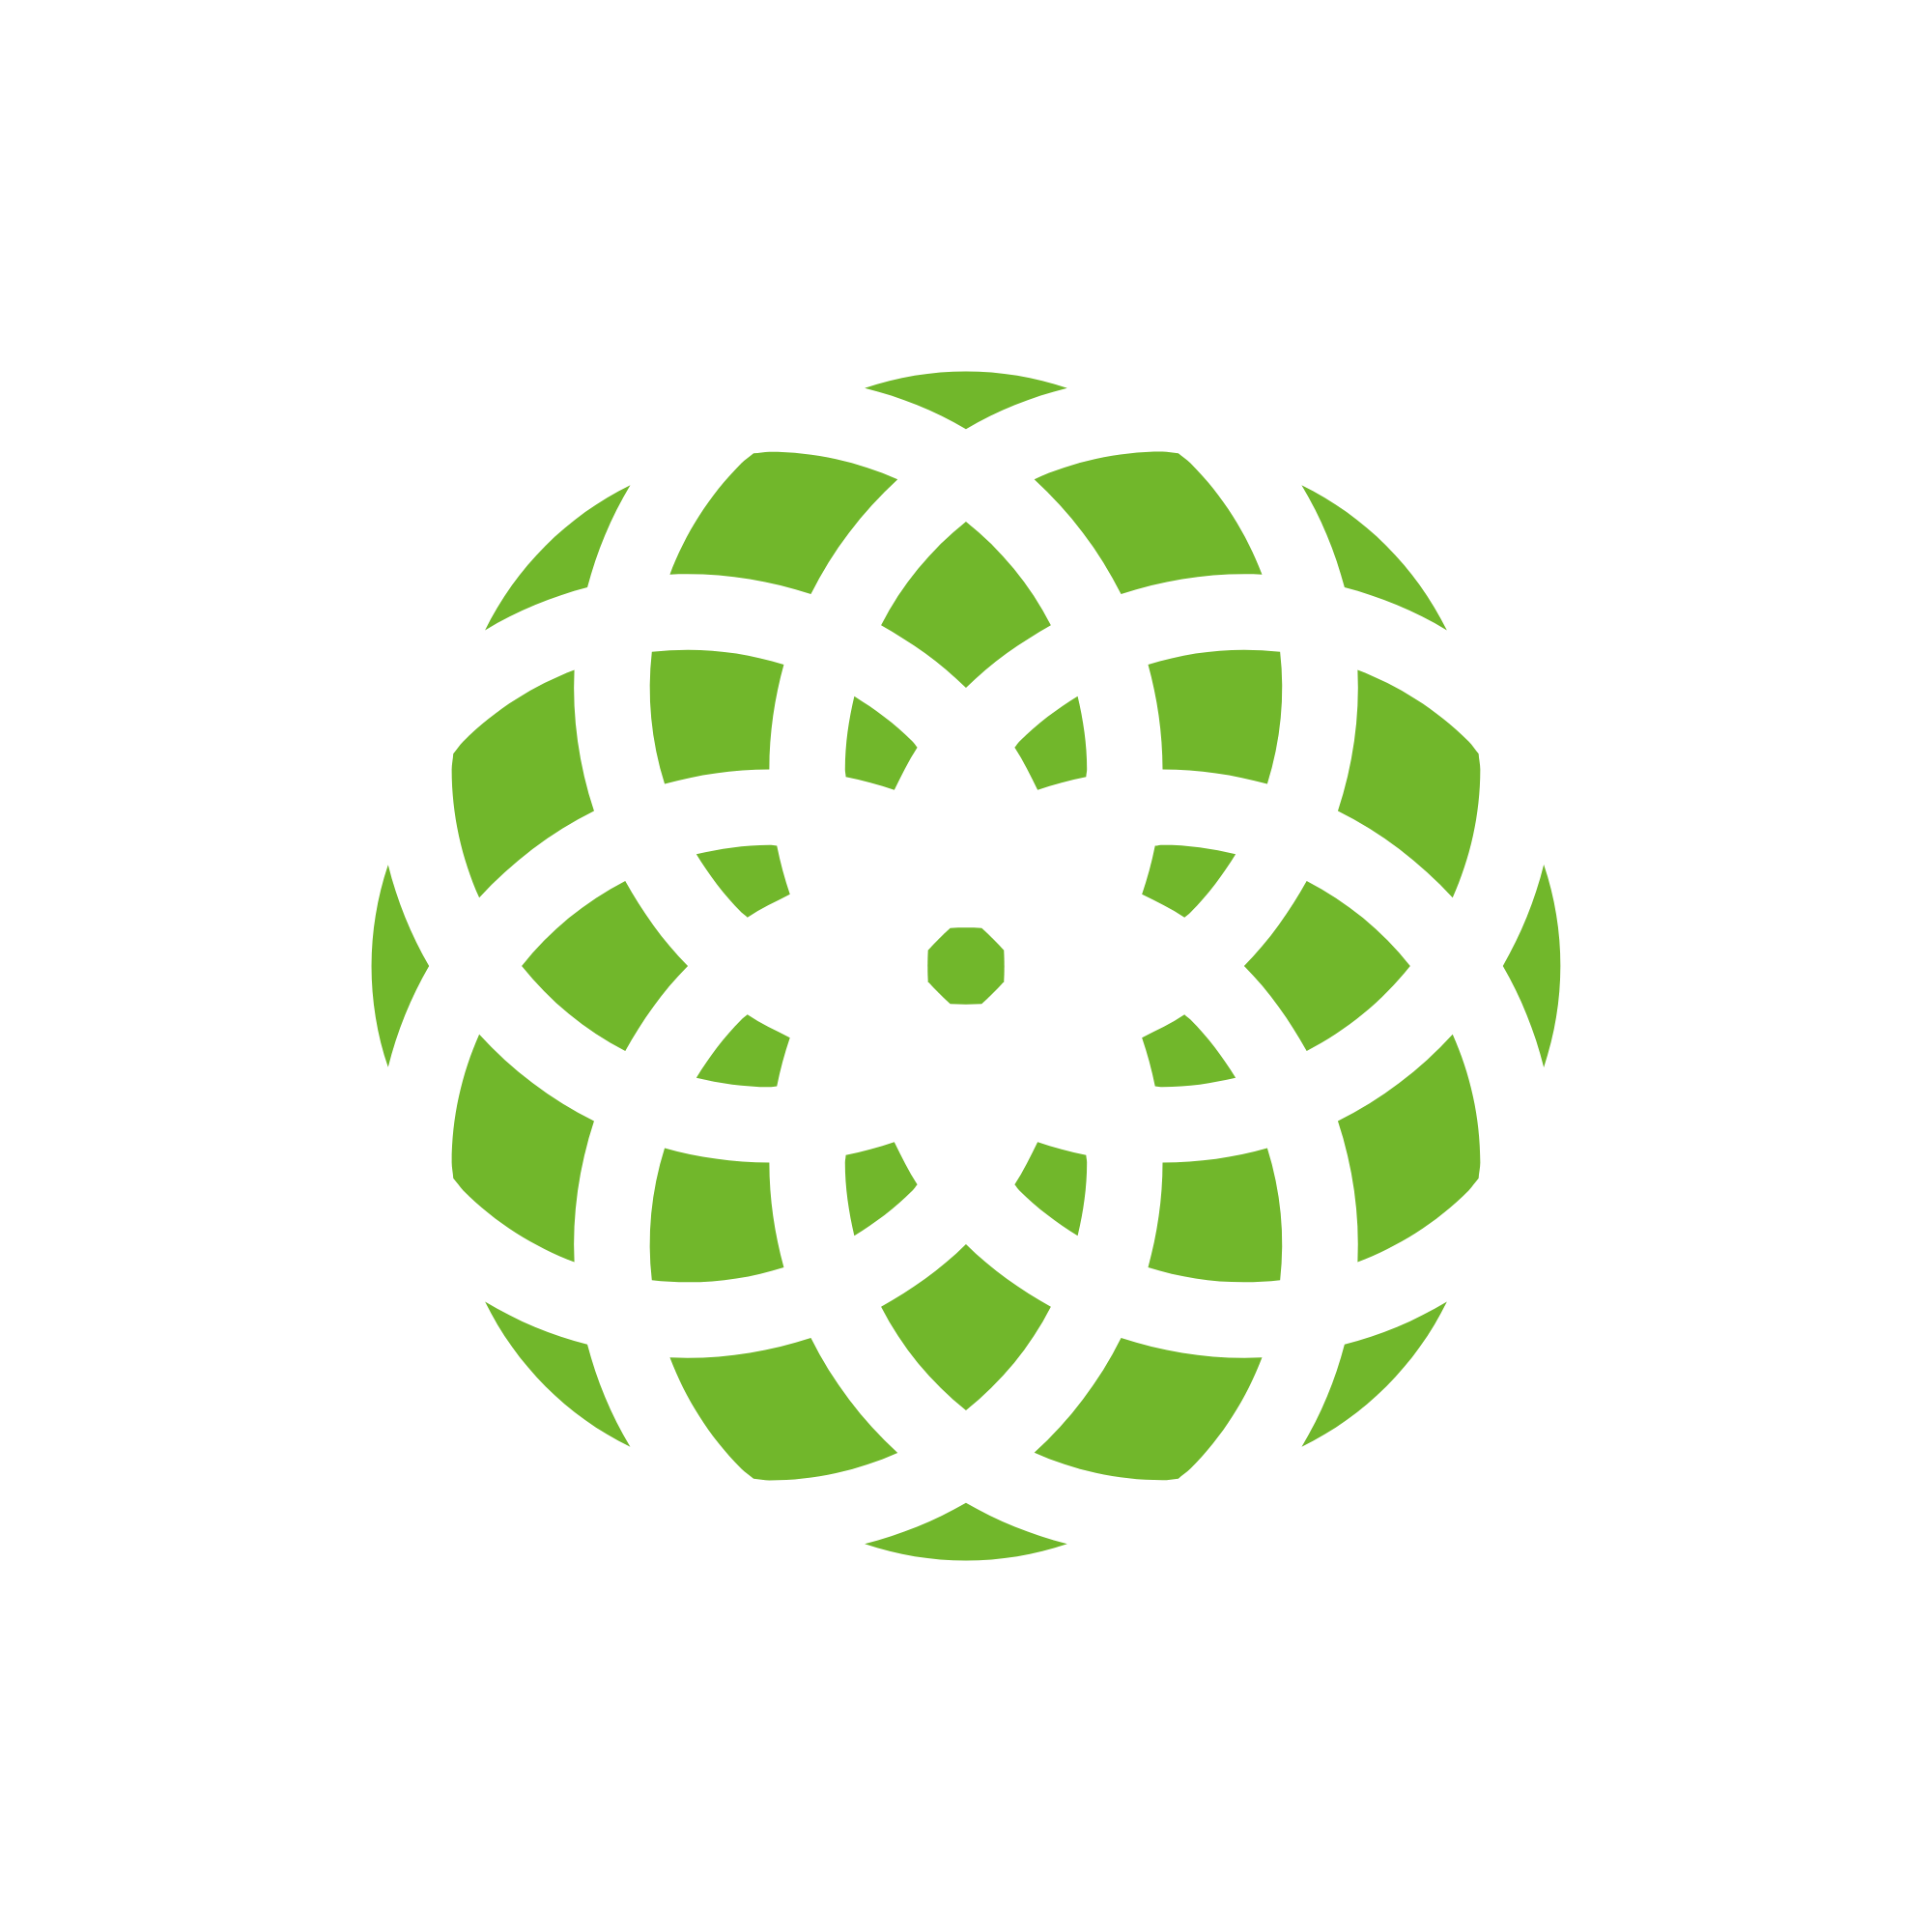 pineapple logo-green.png